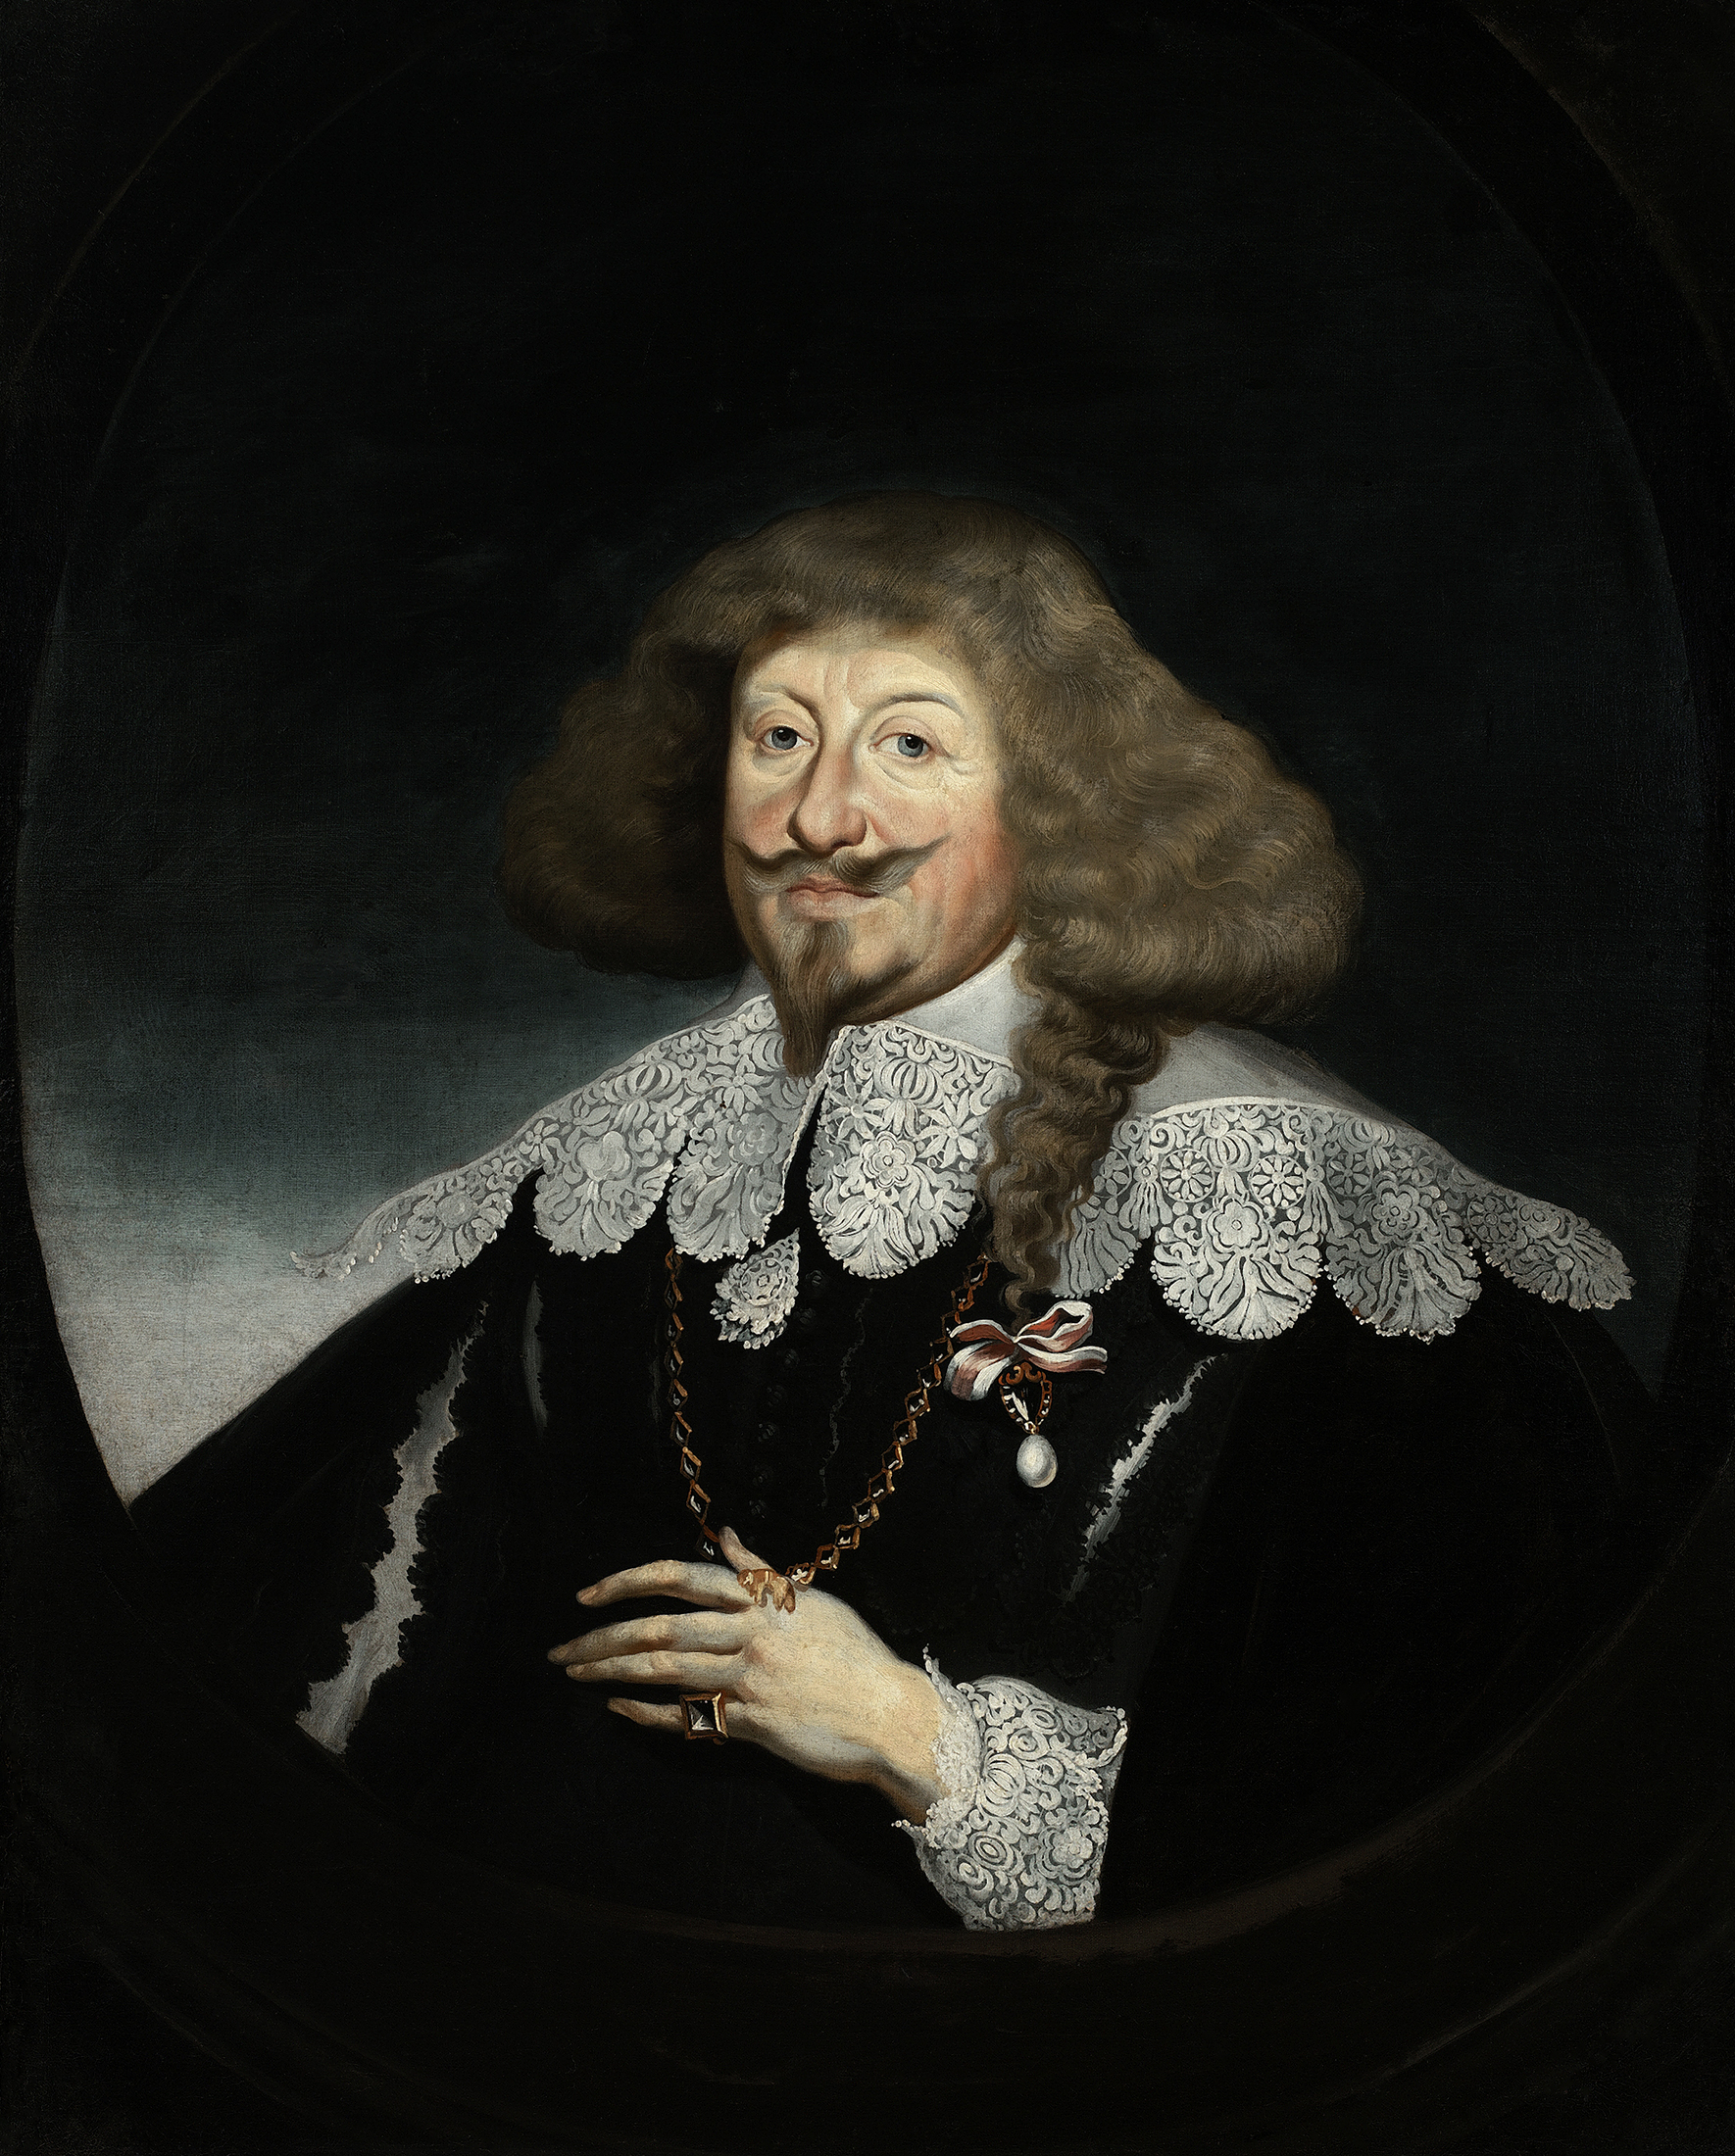 Portrait of Władysław IV Vasa (1595-1648), King of Poland and Grand Duke of Lithuania (1632-1648), Tsar and Grand Prince of All Russia (1610-1613), 1639 | Portraits of Kings